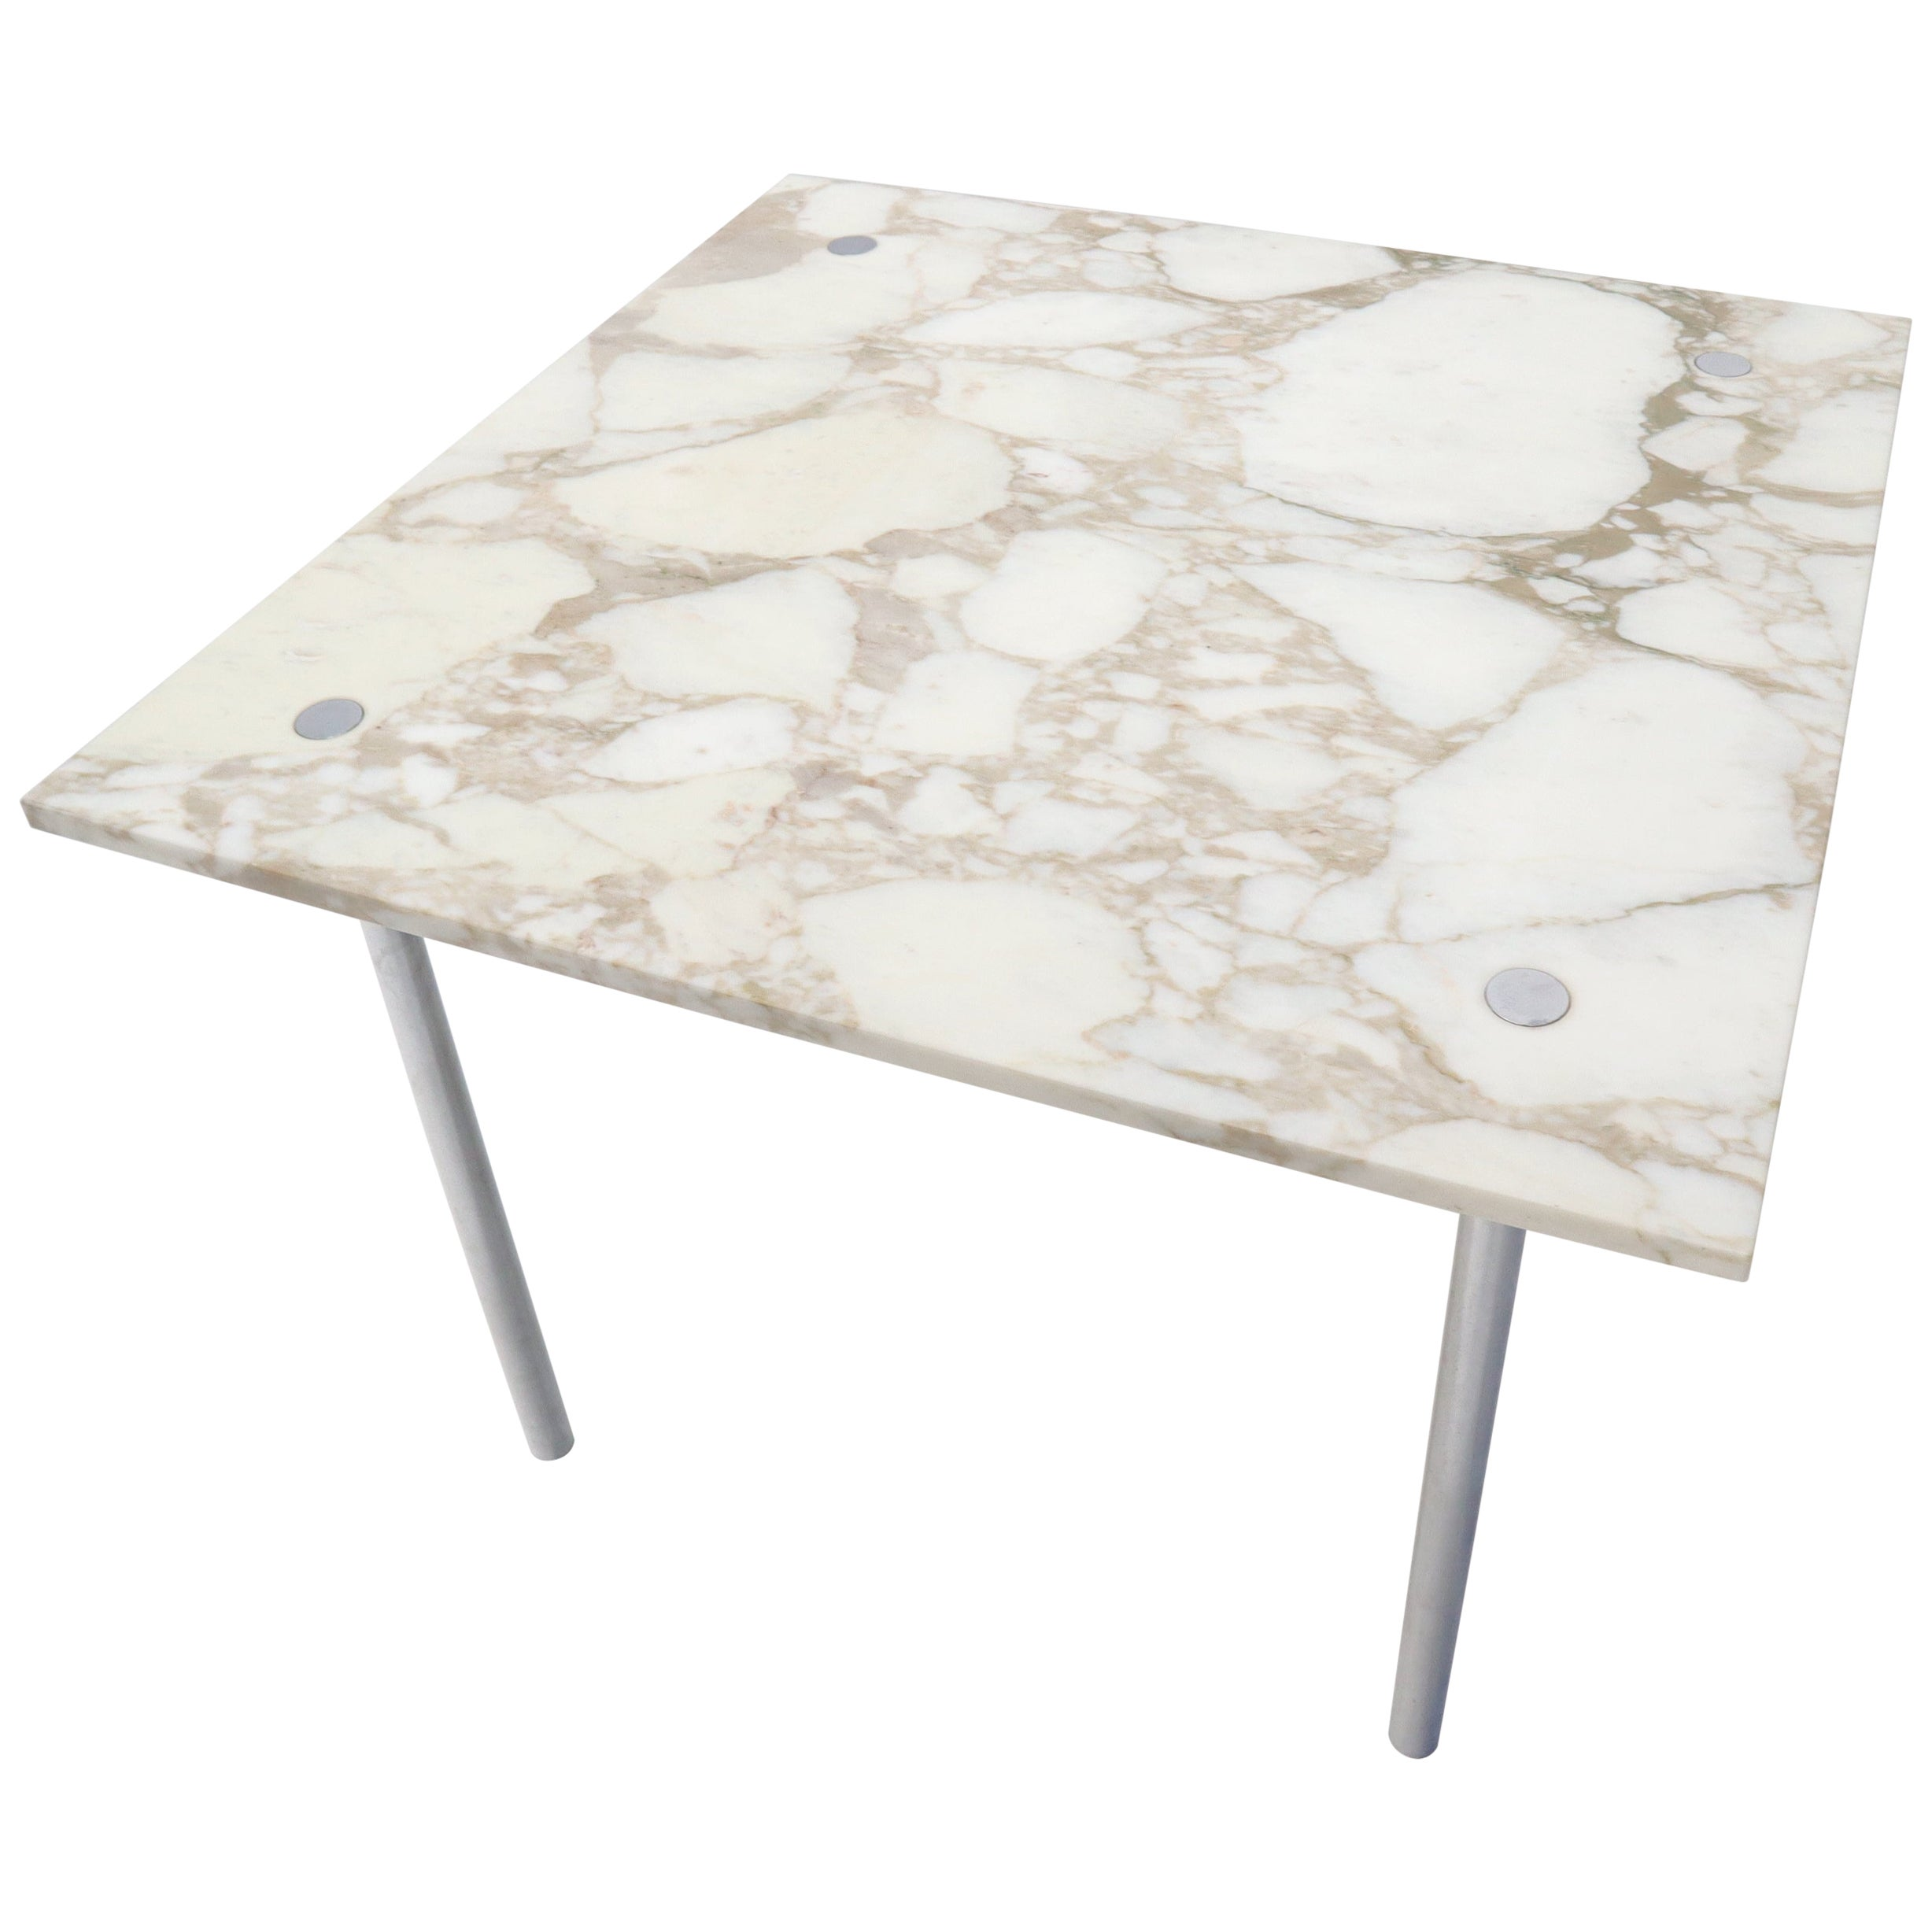 Square Marble Top Cylinder Chrome Legs Game Dining Center Table